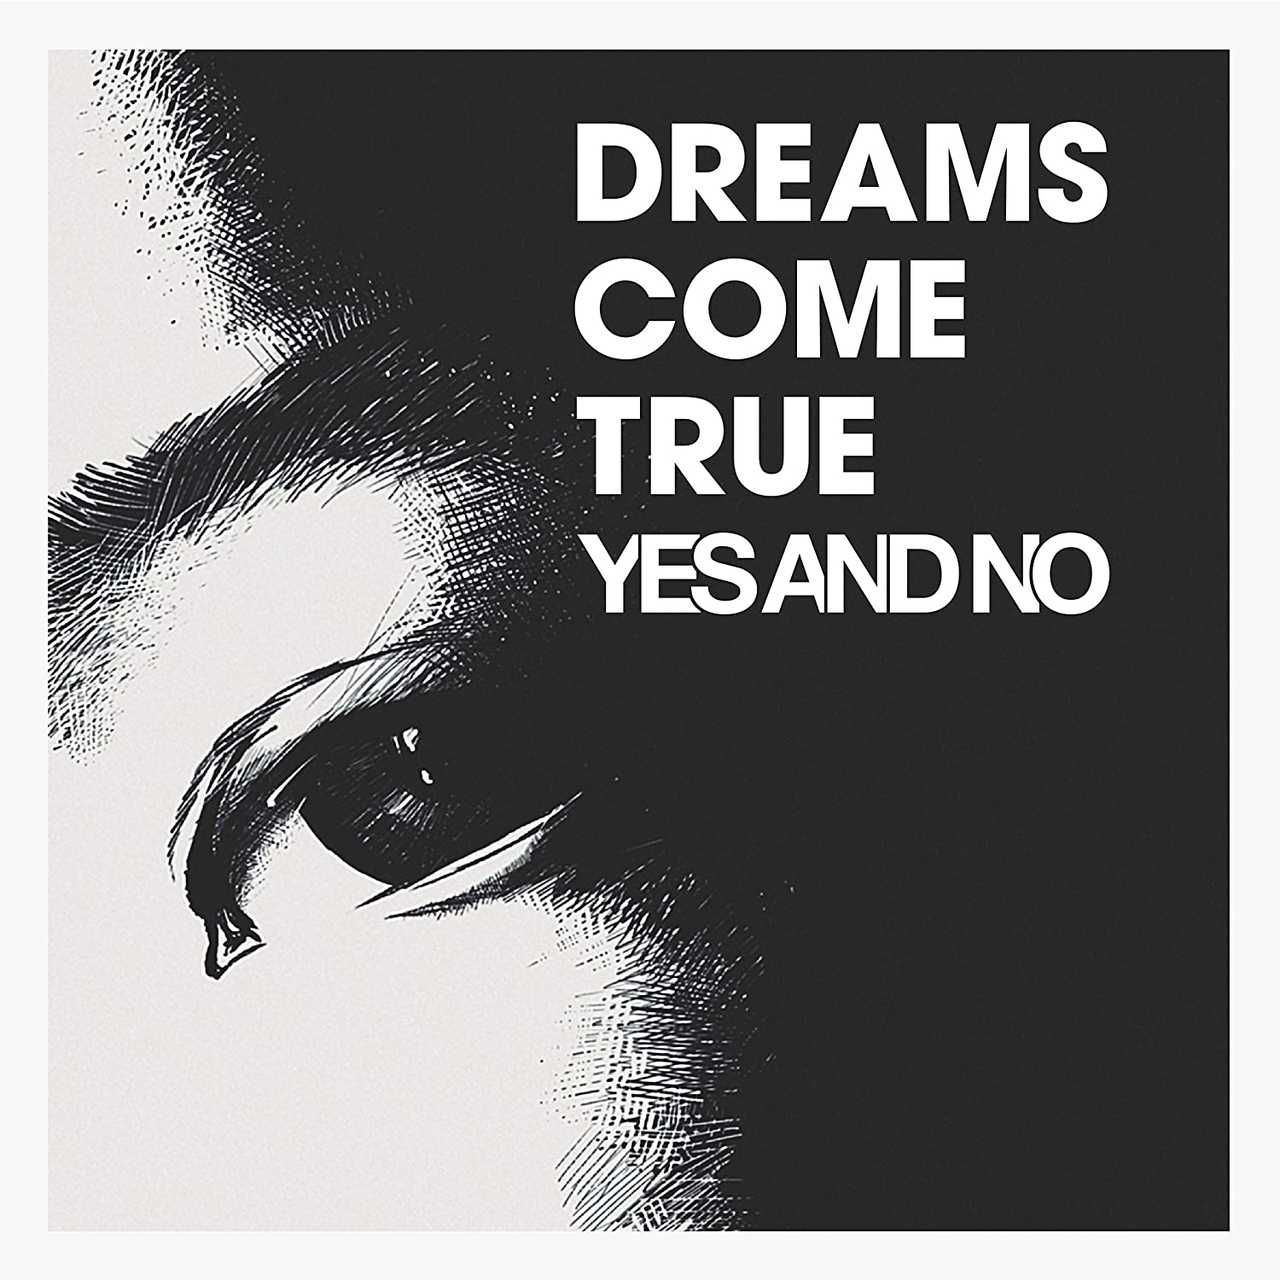 「YES AND NO」DREAMS COME TRUEから窮屈に生きている私たちへ